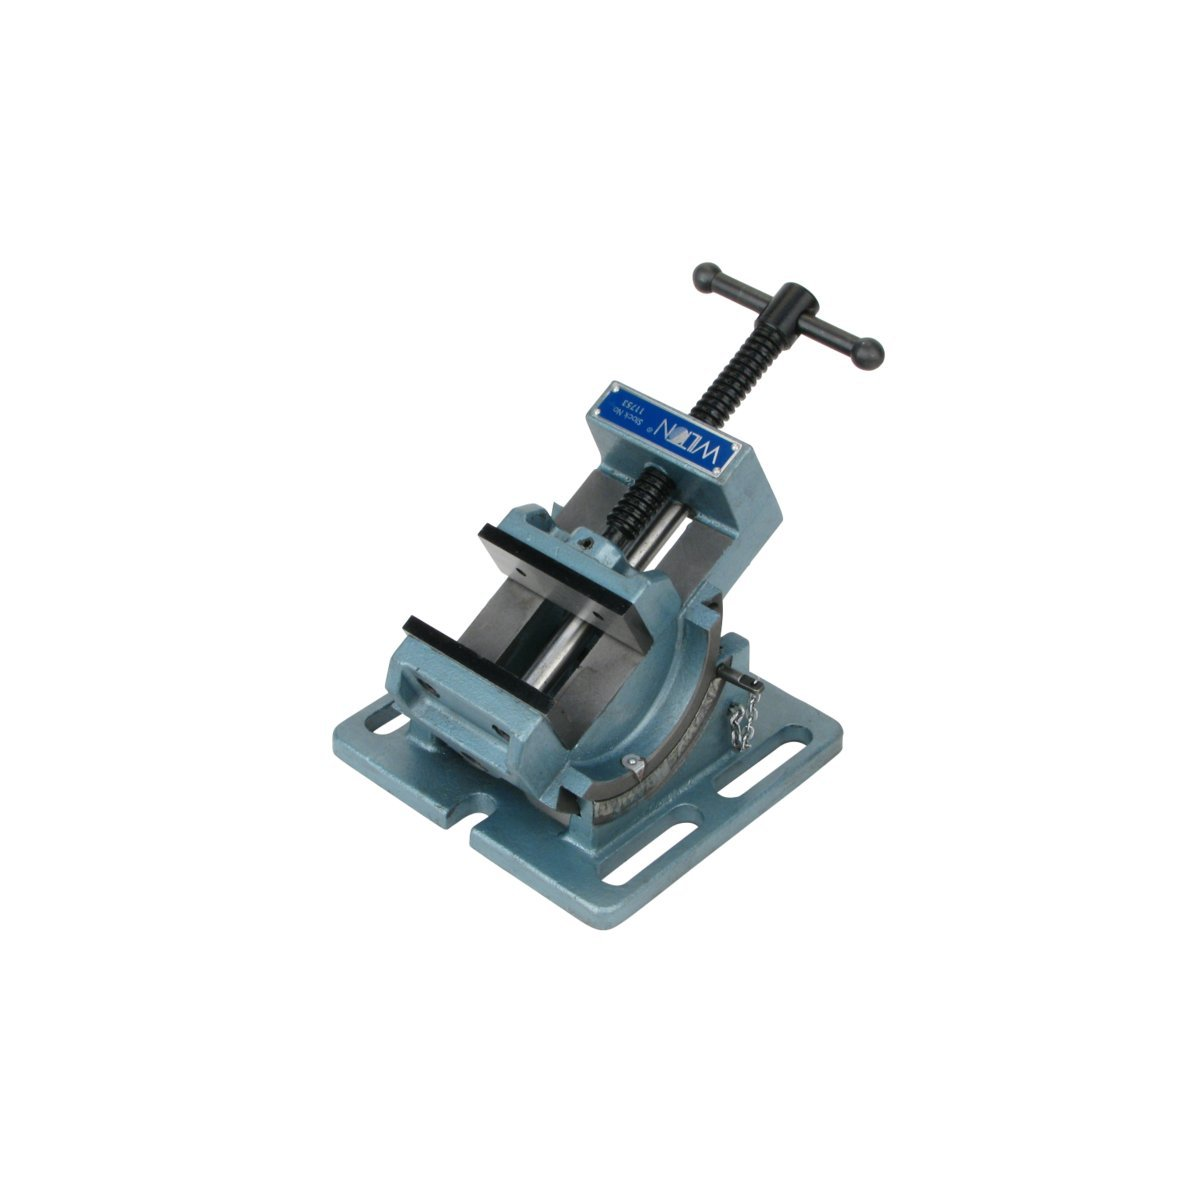 Wilton 11753 3-Inch Cradle Style Angle Drill Press Vise by Wilton